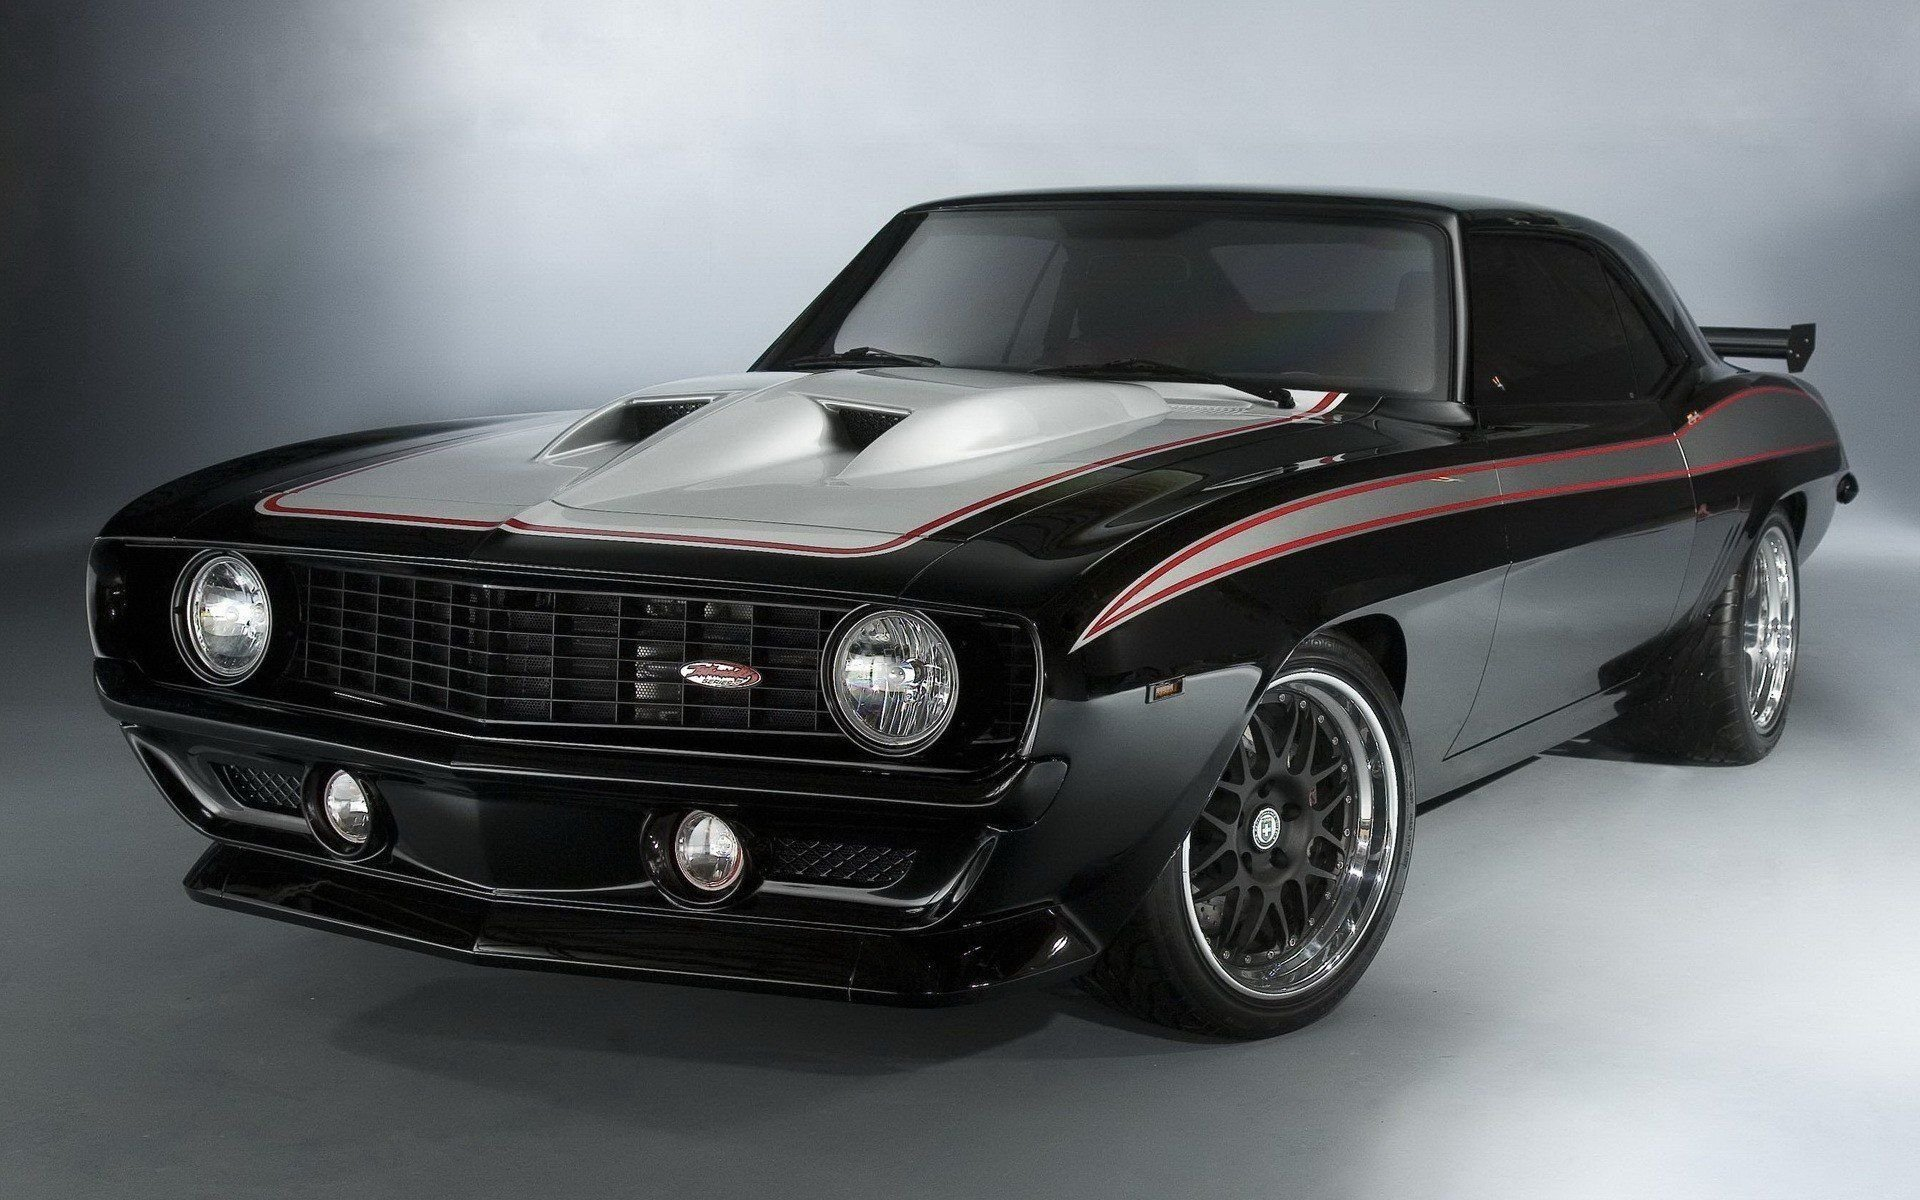 Latest Chevy Muscle Car Wallpapers Top Free Chevy Muscle Car Free Download